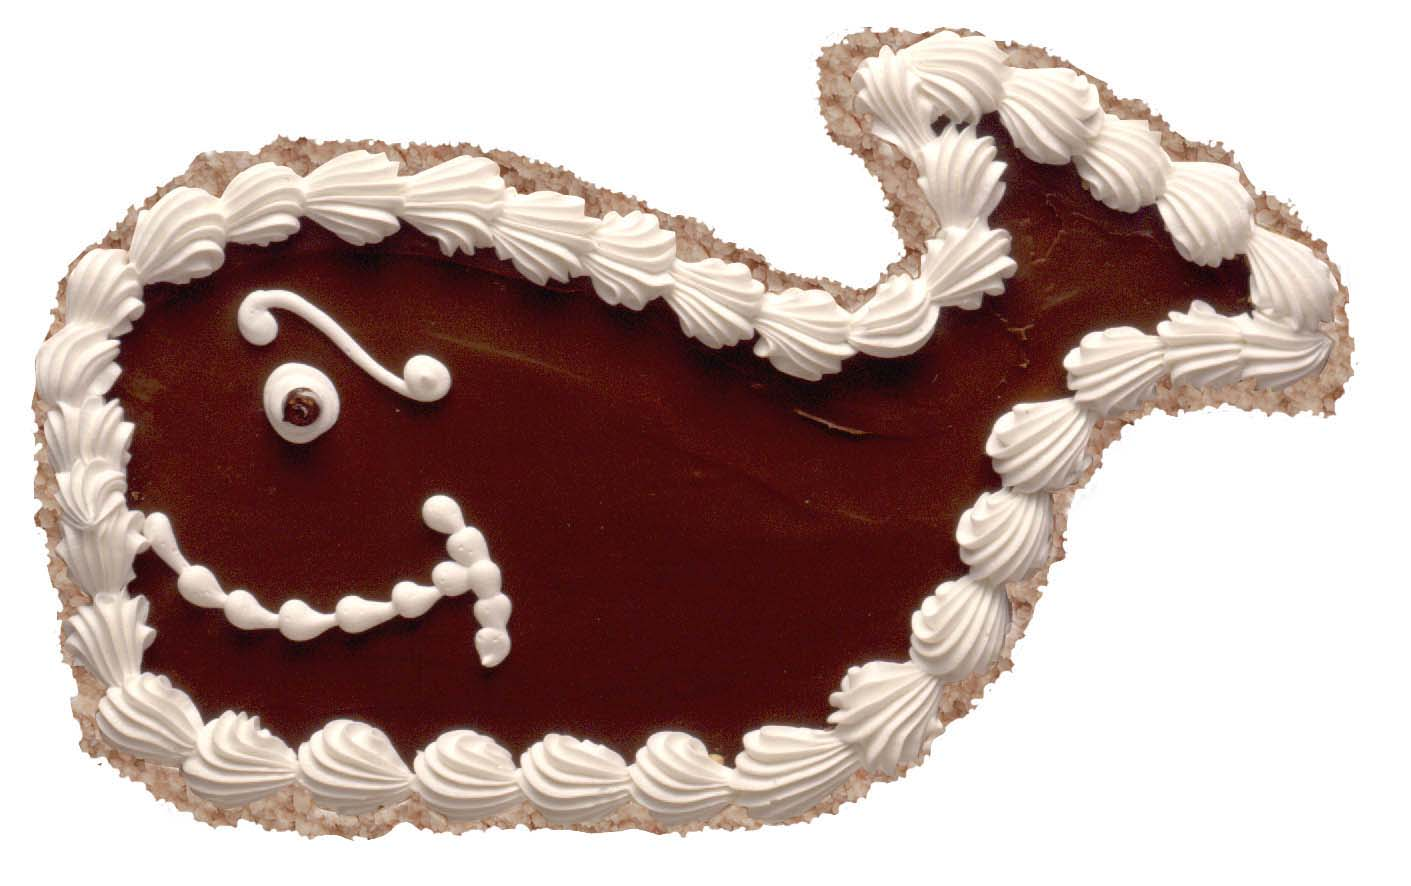 How To Make A Fudgie The Whale Cake